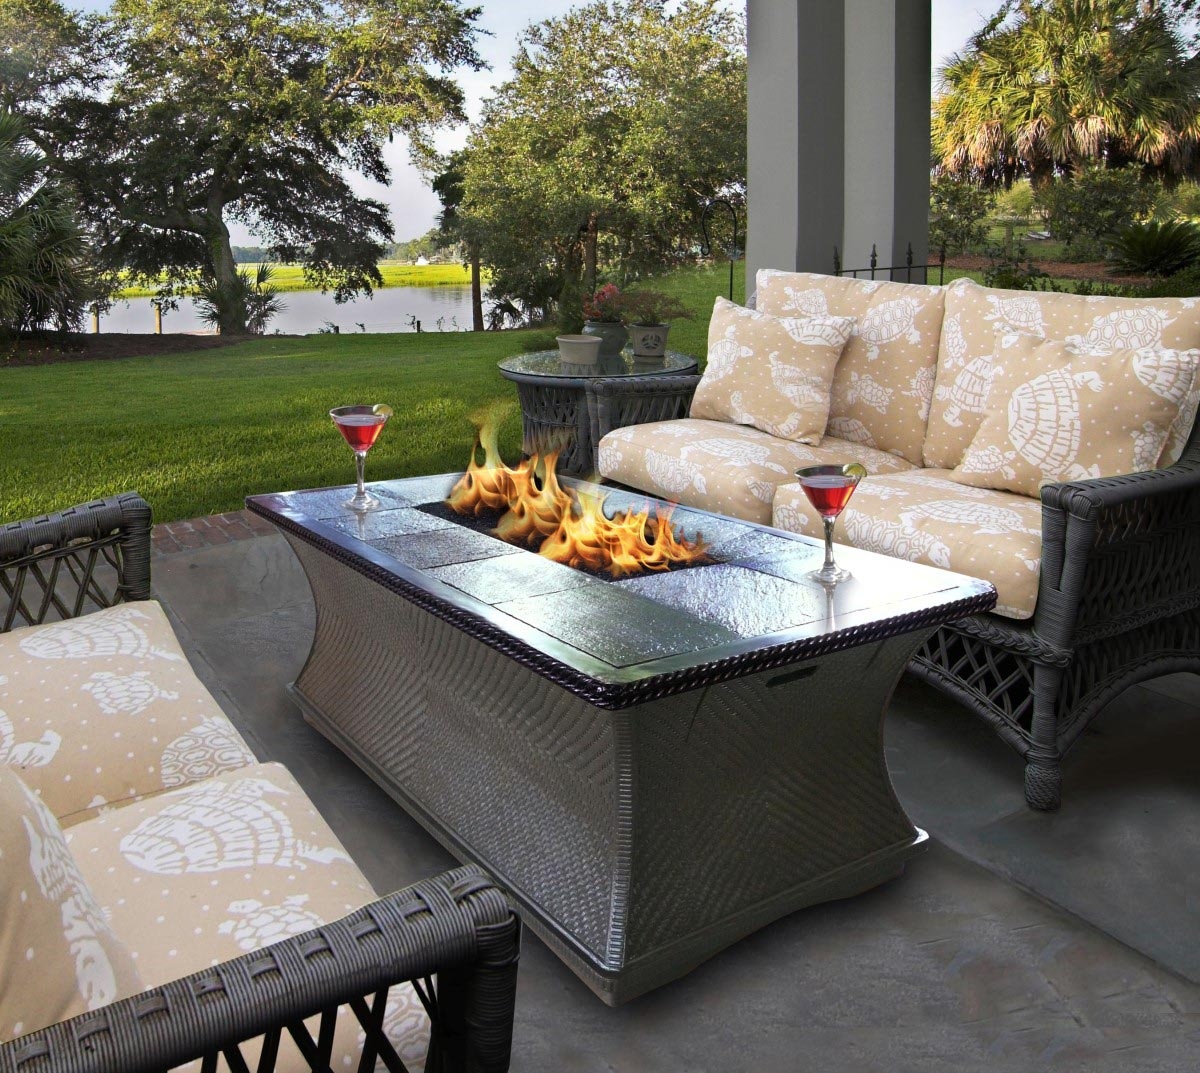 How To Make A DIY Fire Pit Table Top Design Ideas